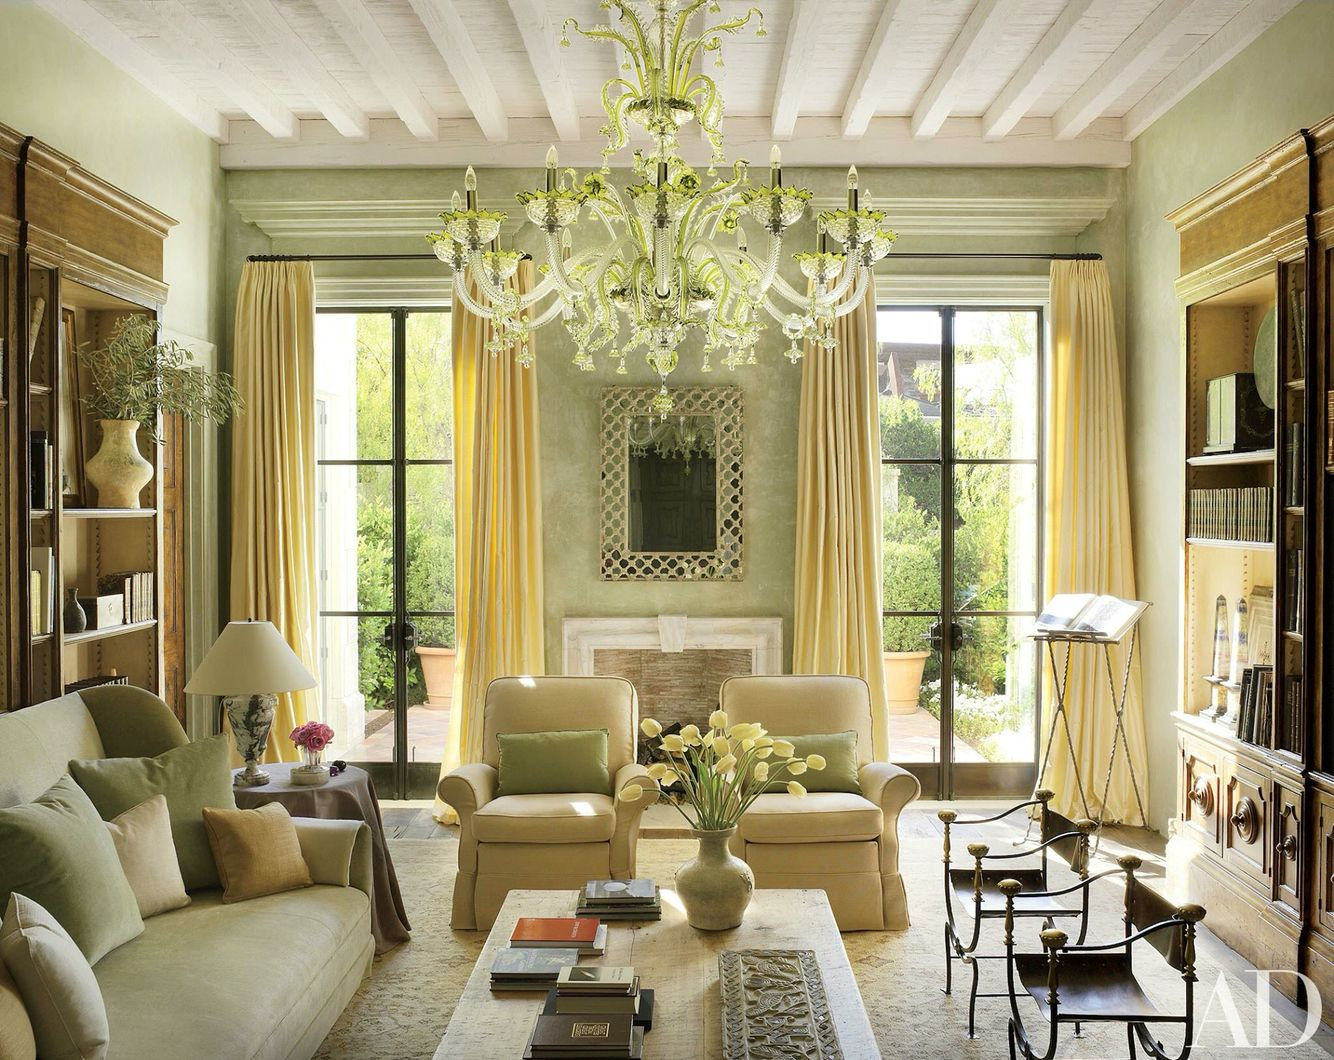 16 Stunning French Style Living Room Ideas: Living Room With A Beautiful Chandelier And French Doors